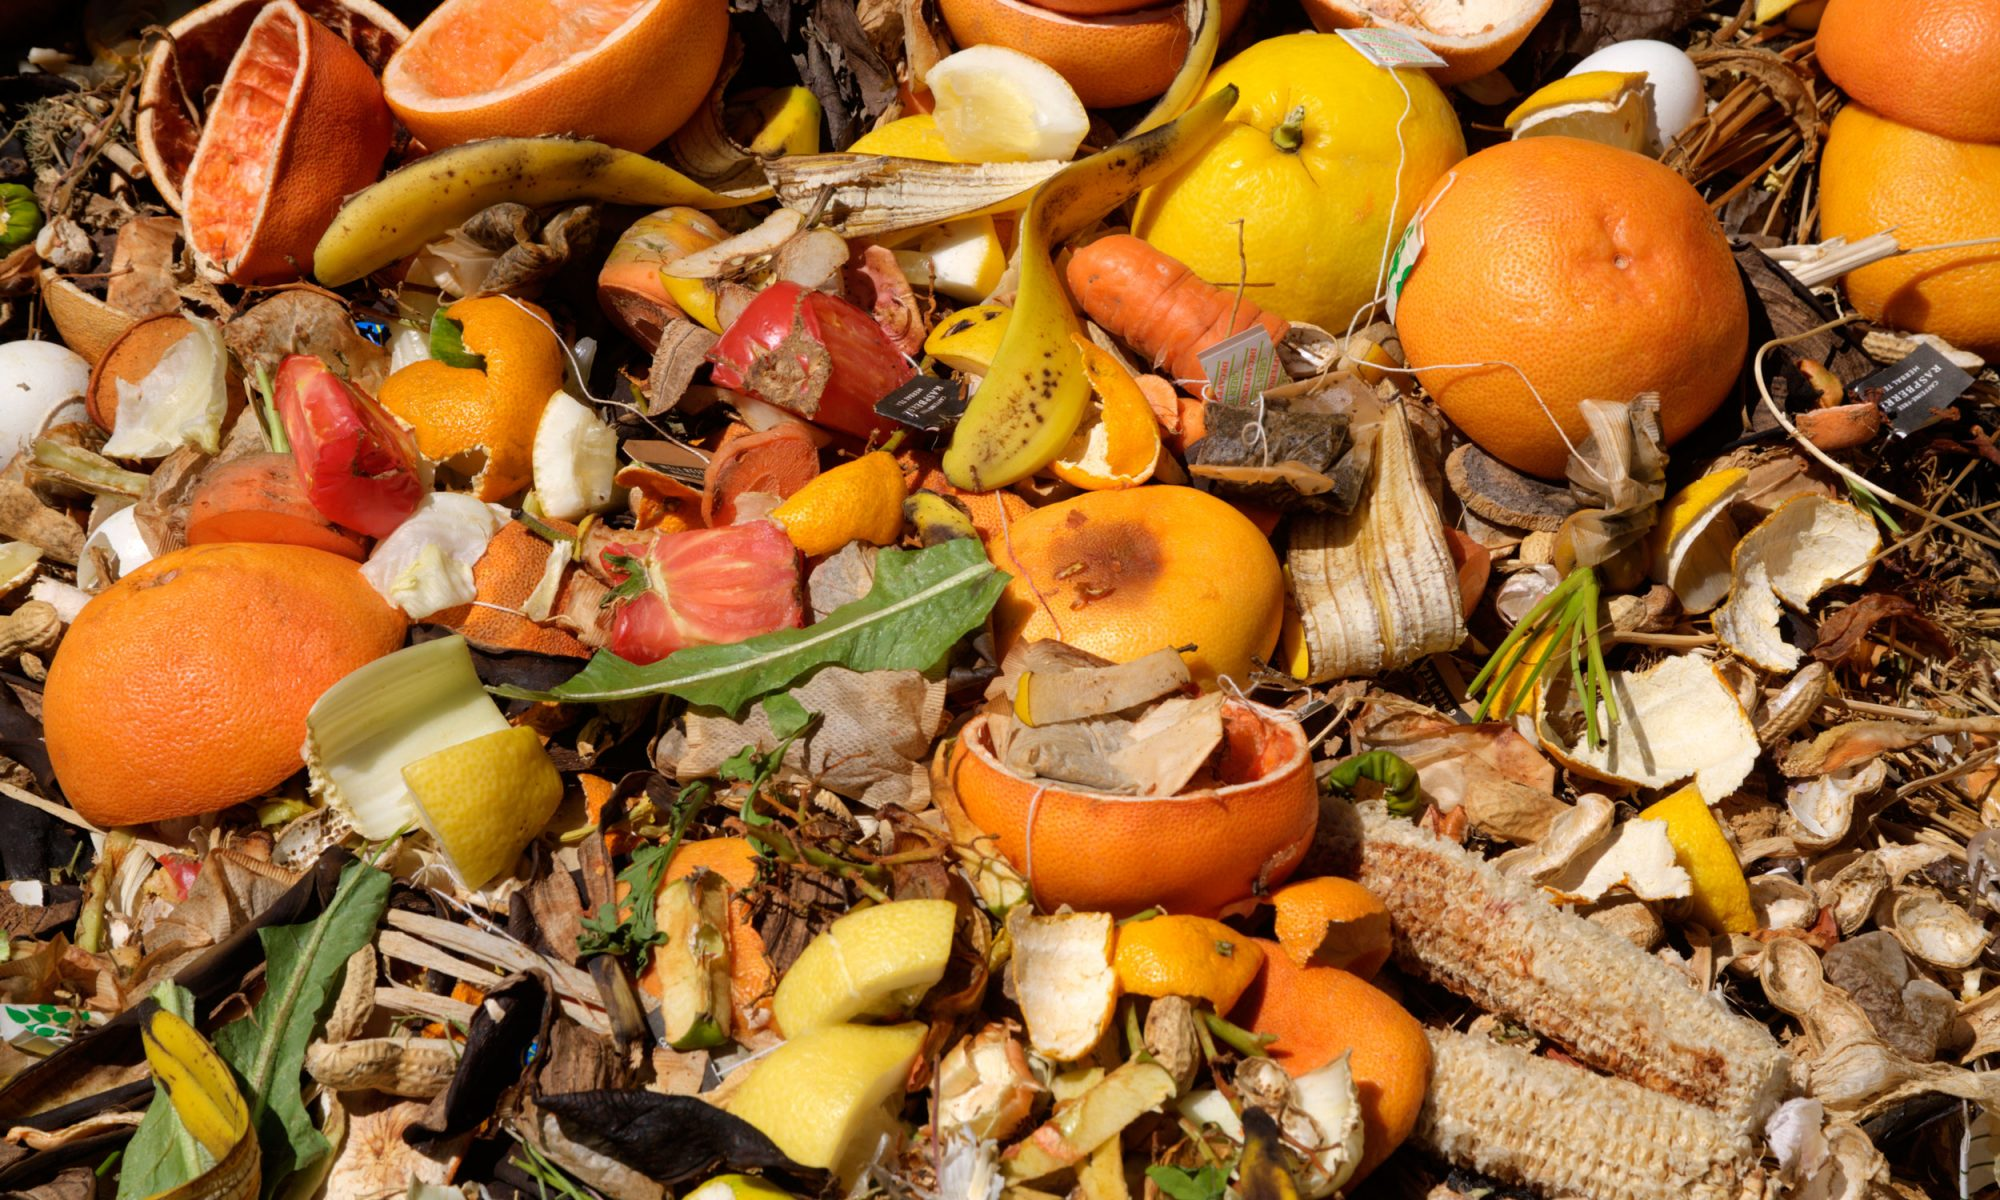 EC: You Can Make Tea from the Stuff in Your Compost Heap